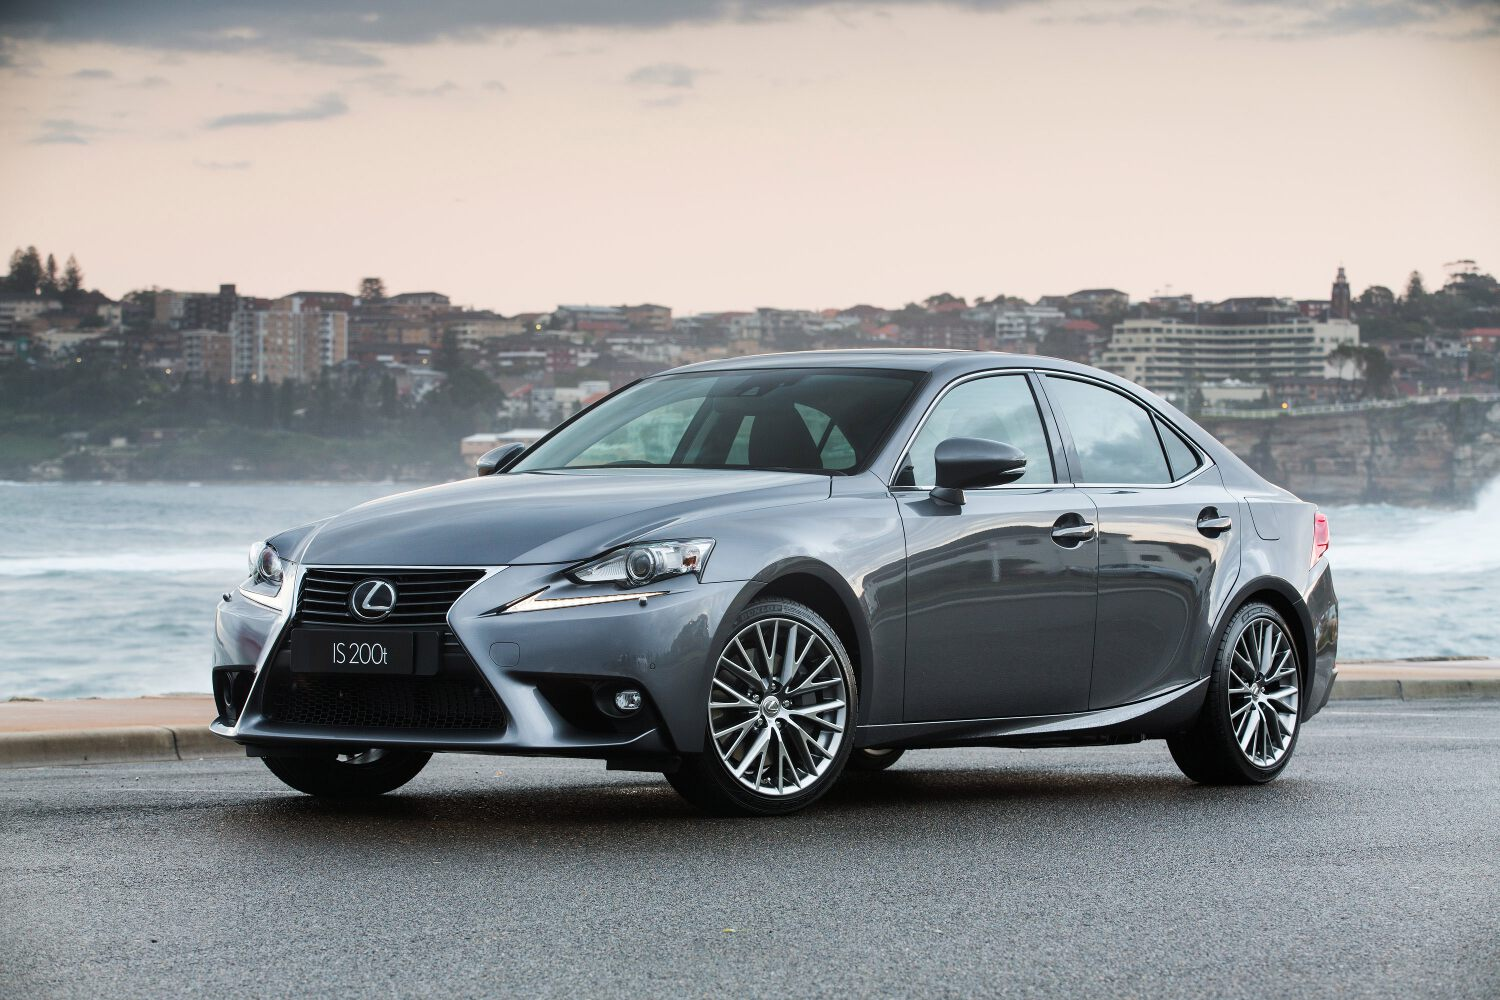 turbo powered lexus is 200t arrives down under. Black Bedroom Furniture Sets. Home Design Ideas